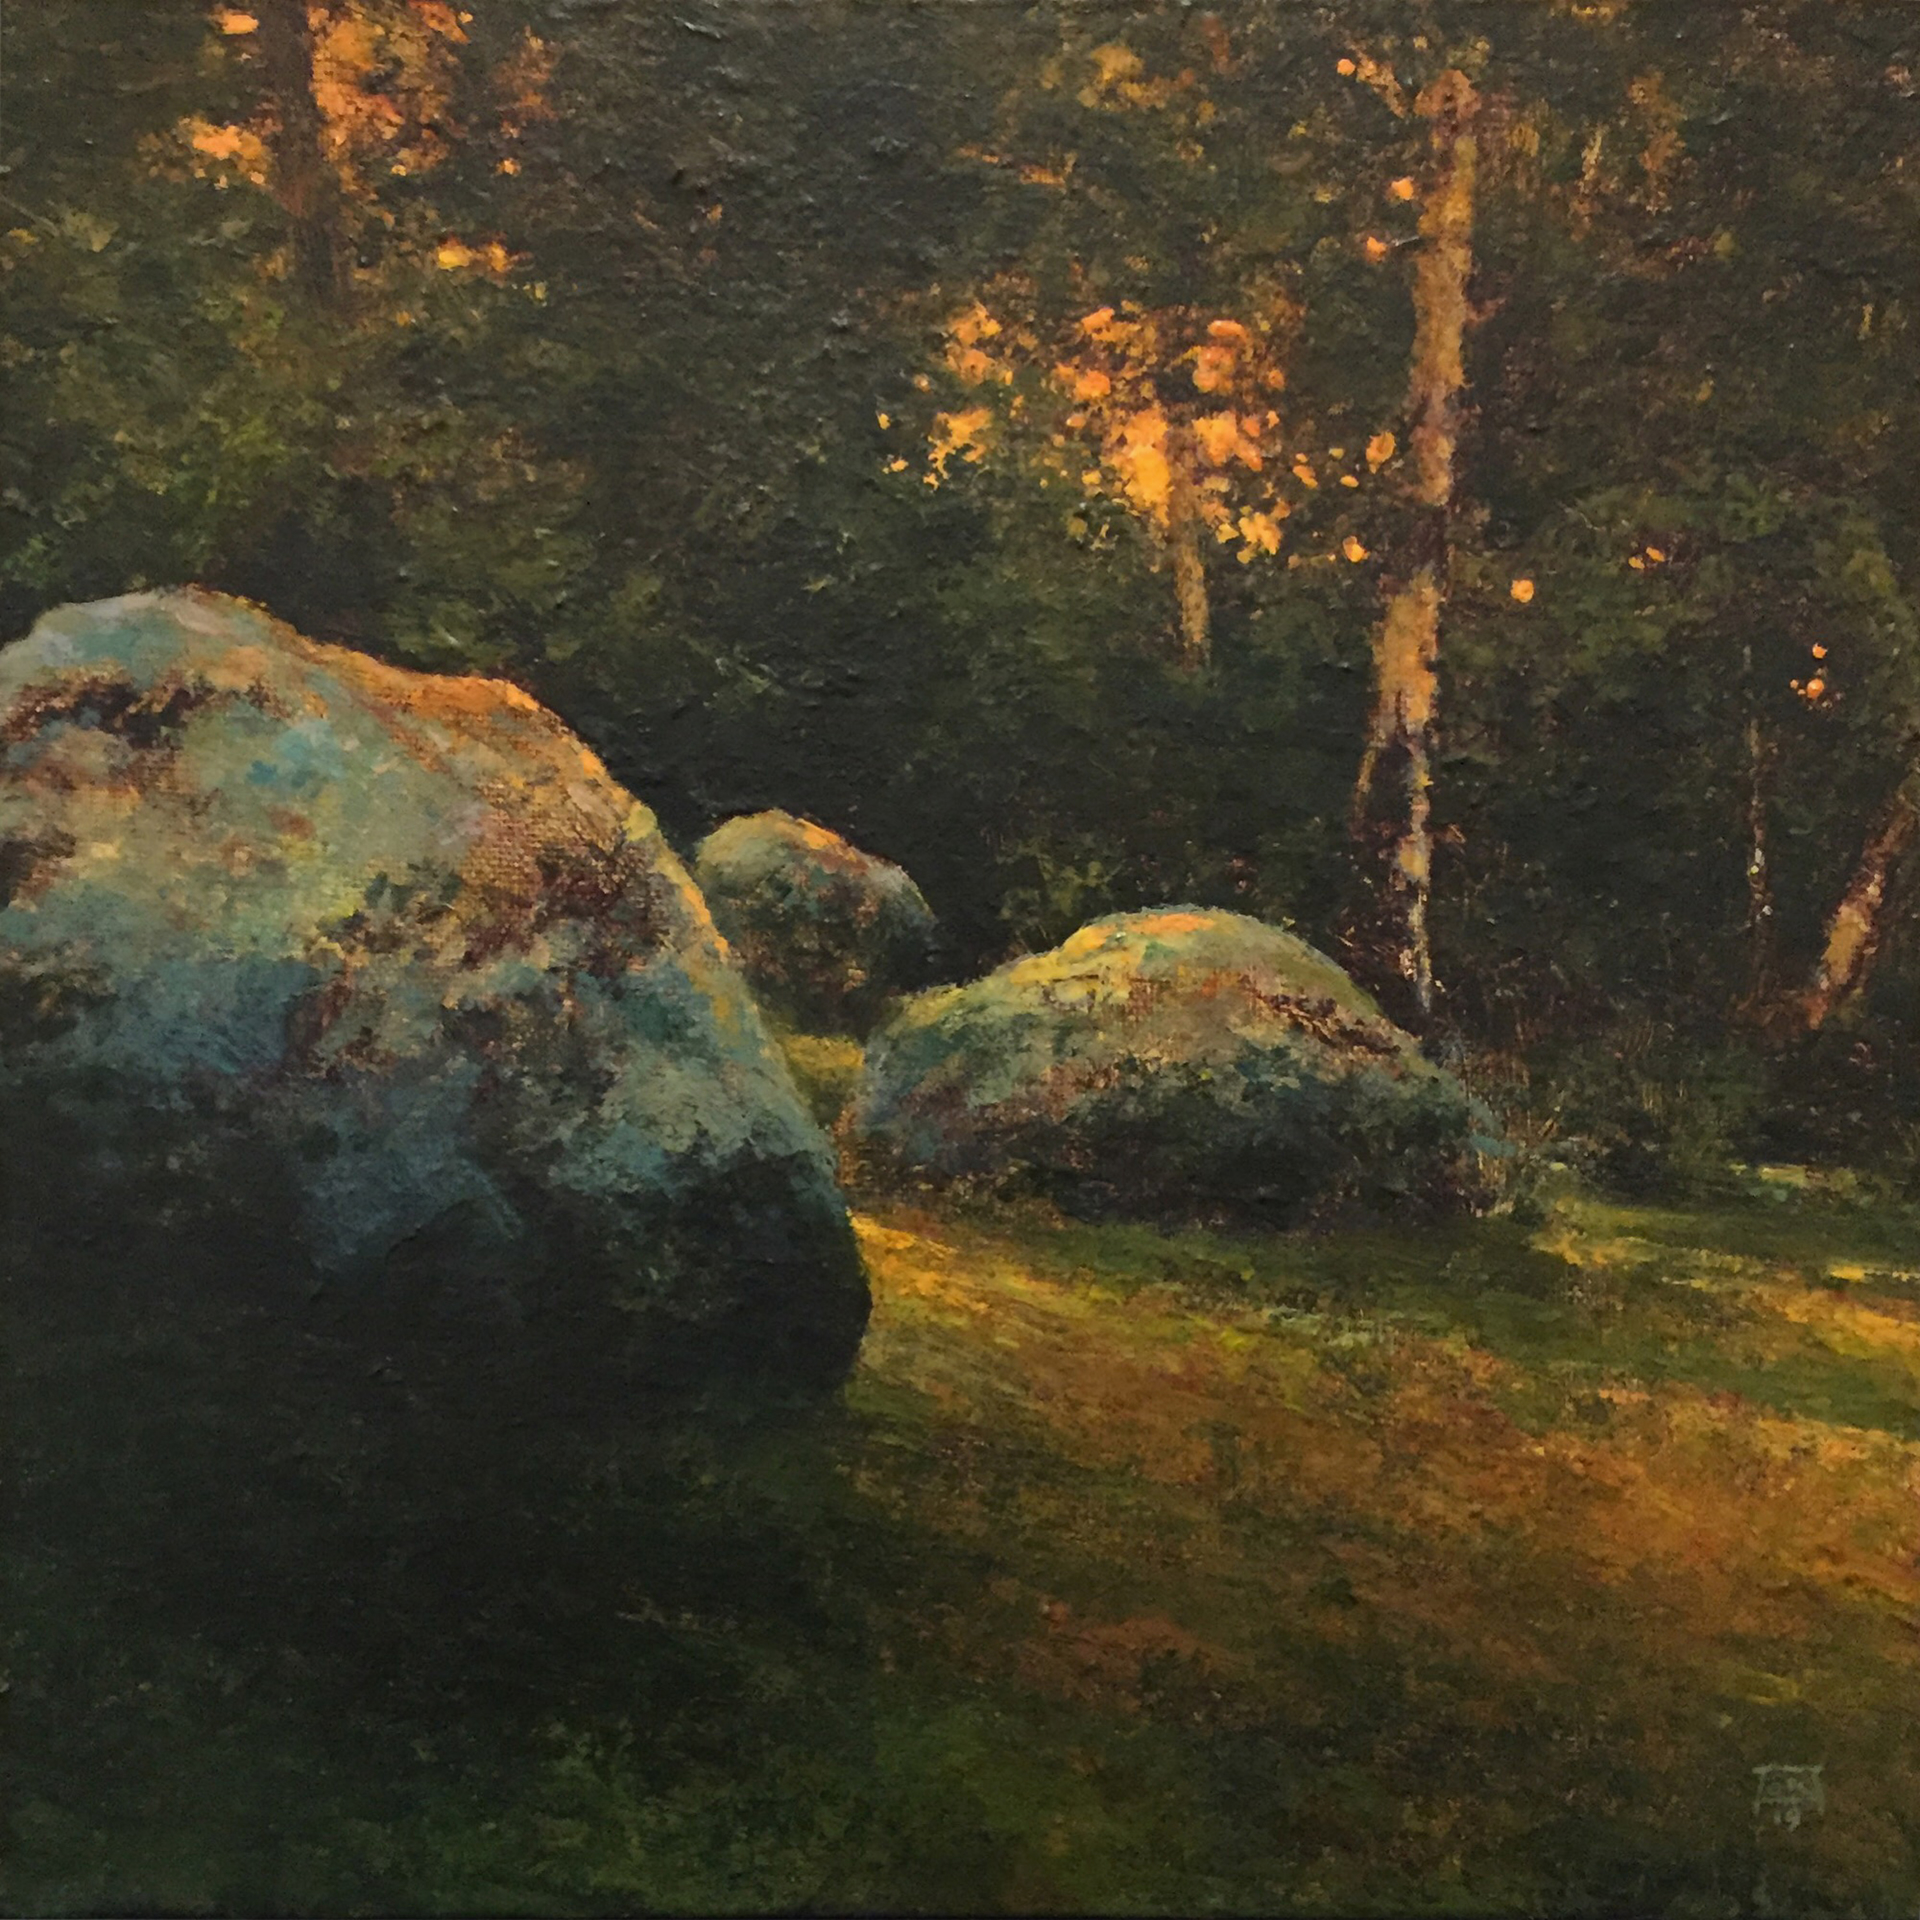 Field and Stone Study 2 by Shawn Krueger